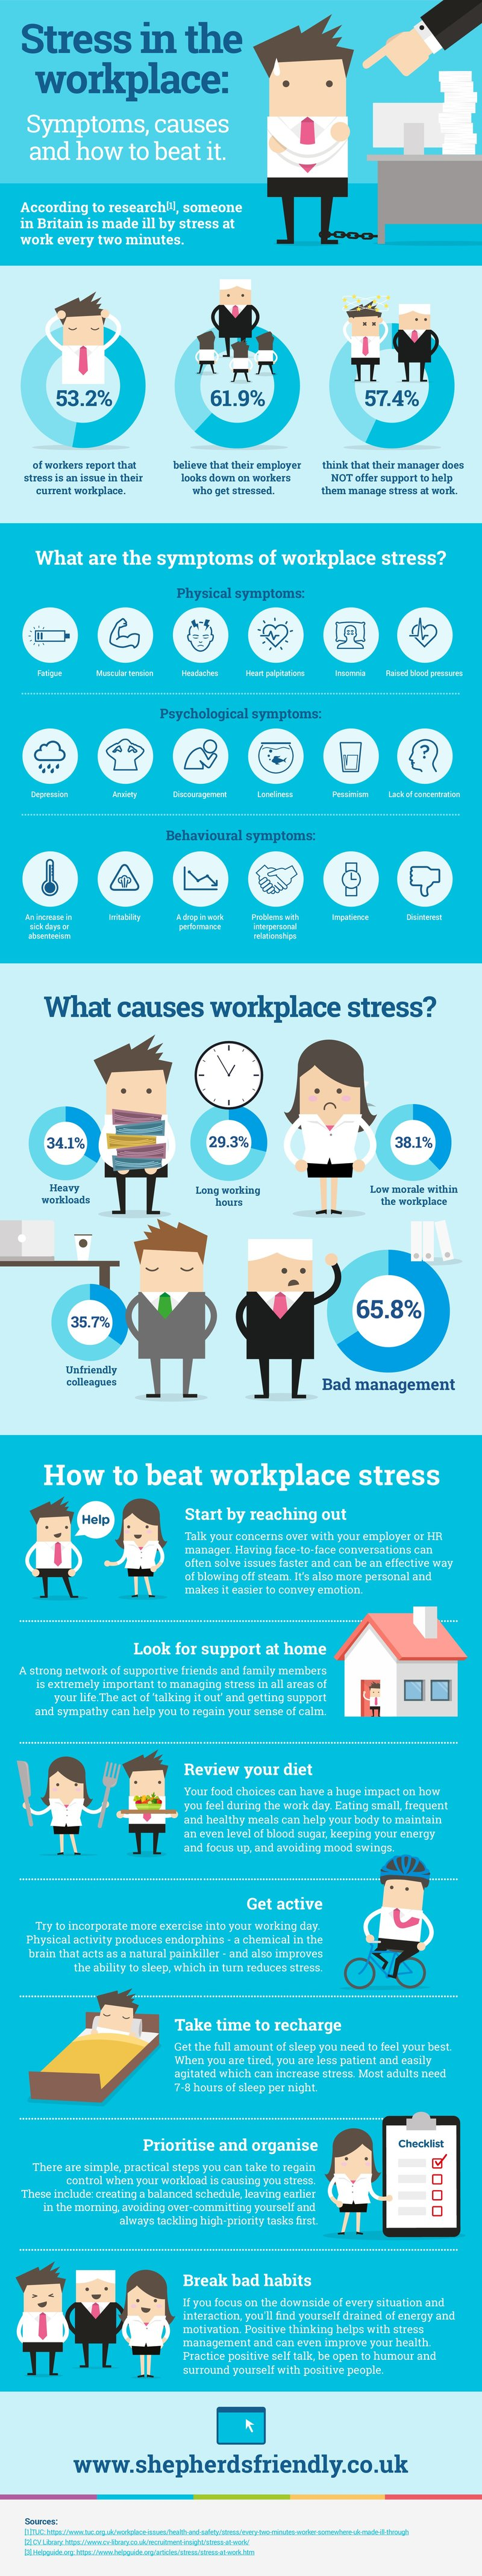 Dealing With Stress At Workplace - Infographic